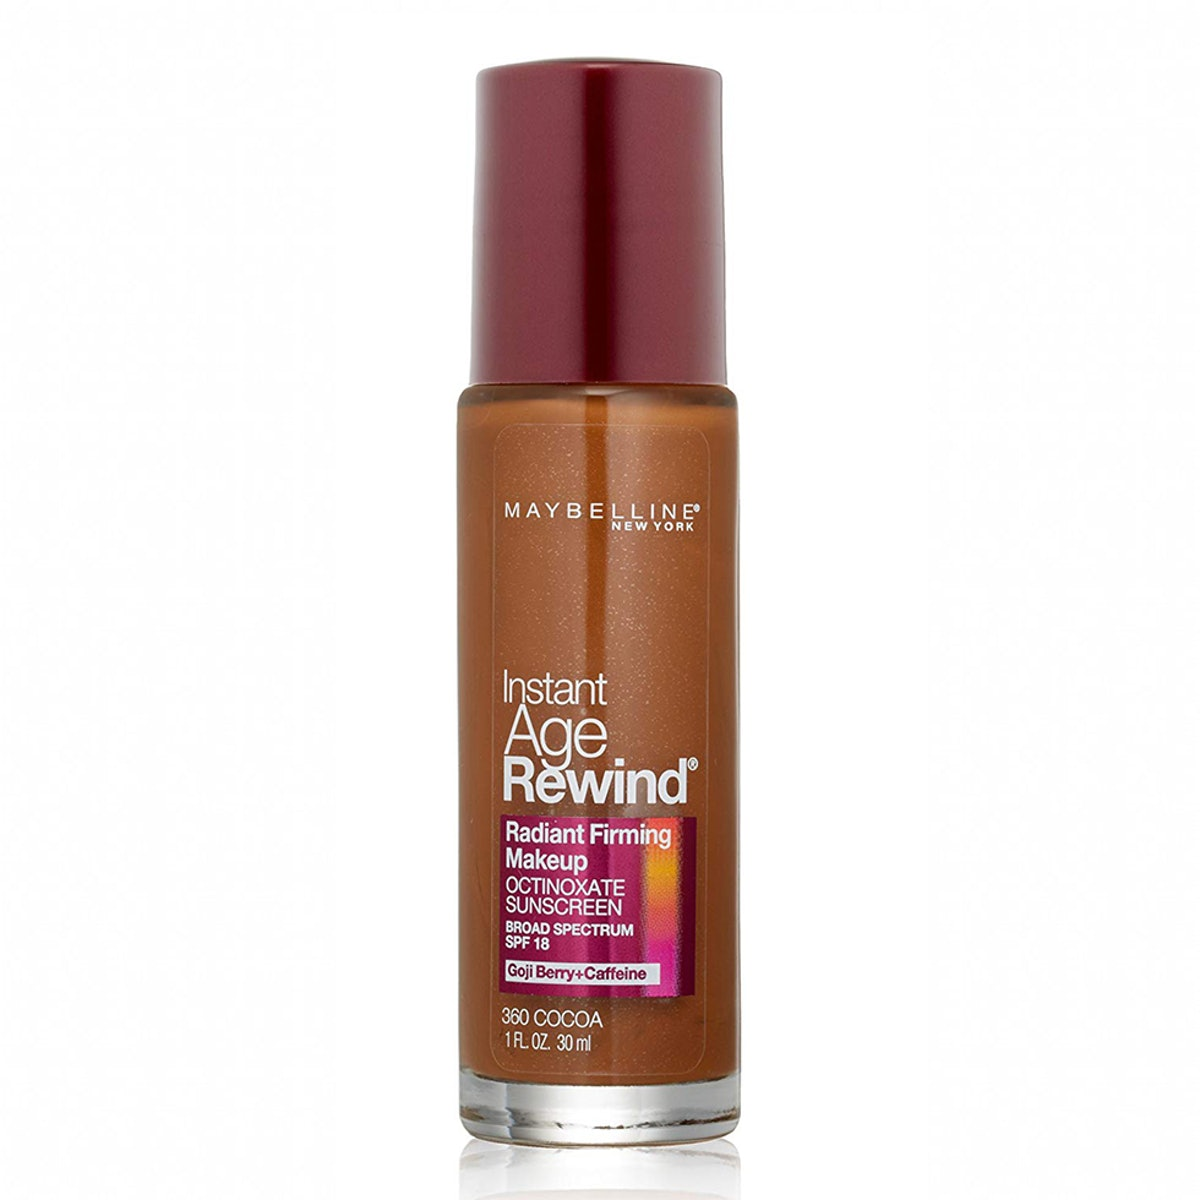 Instant Age Rewind Radiant Firming Makeup